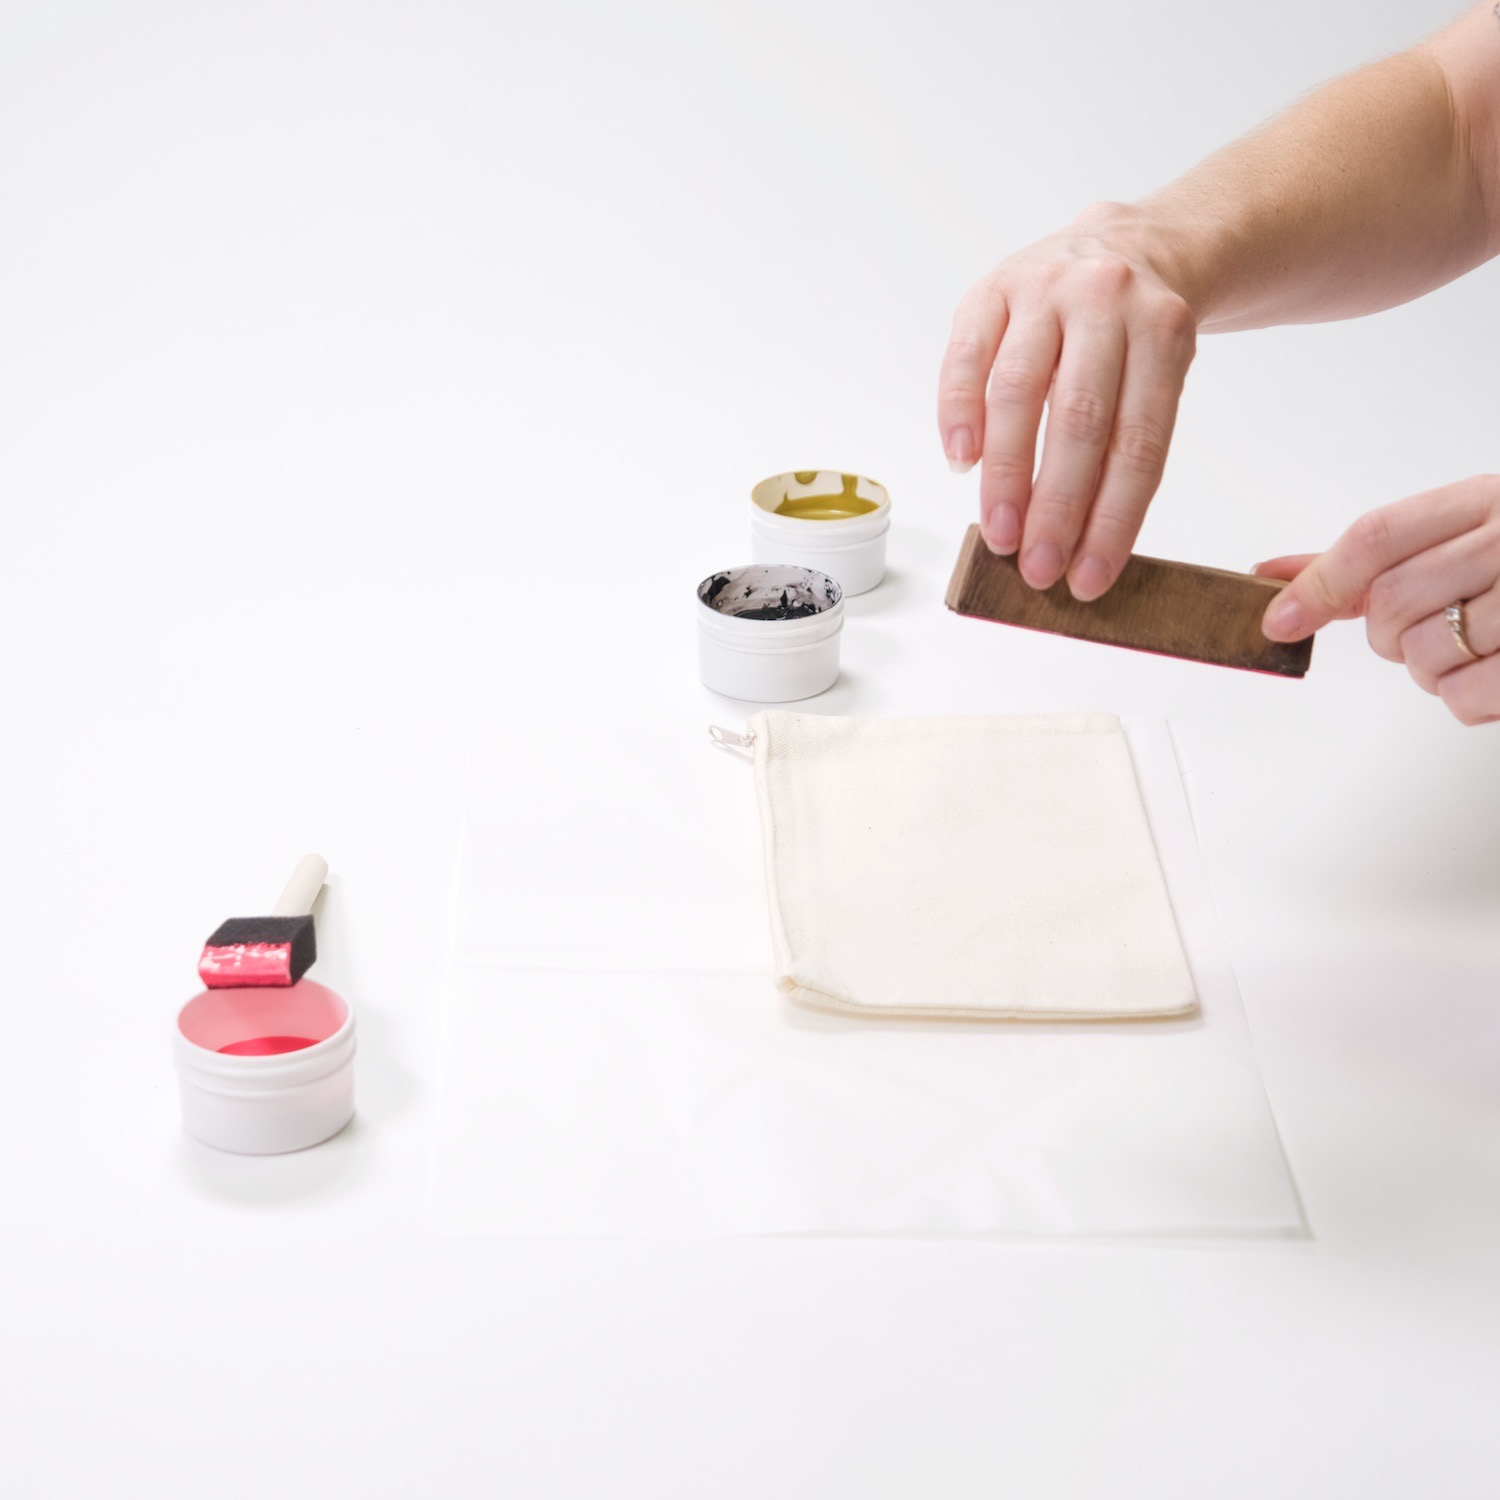 press the wood block into the zipper pouch